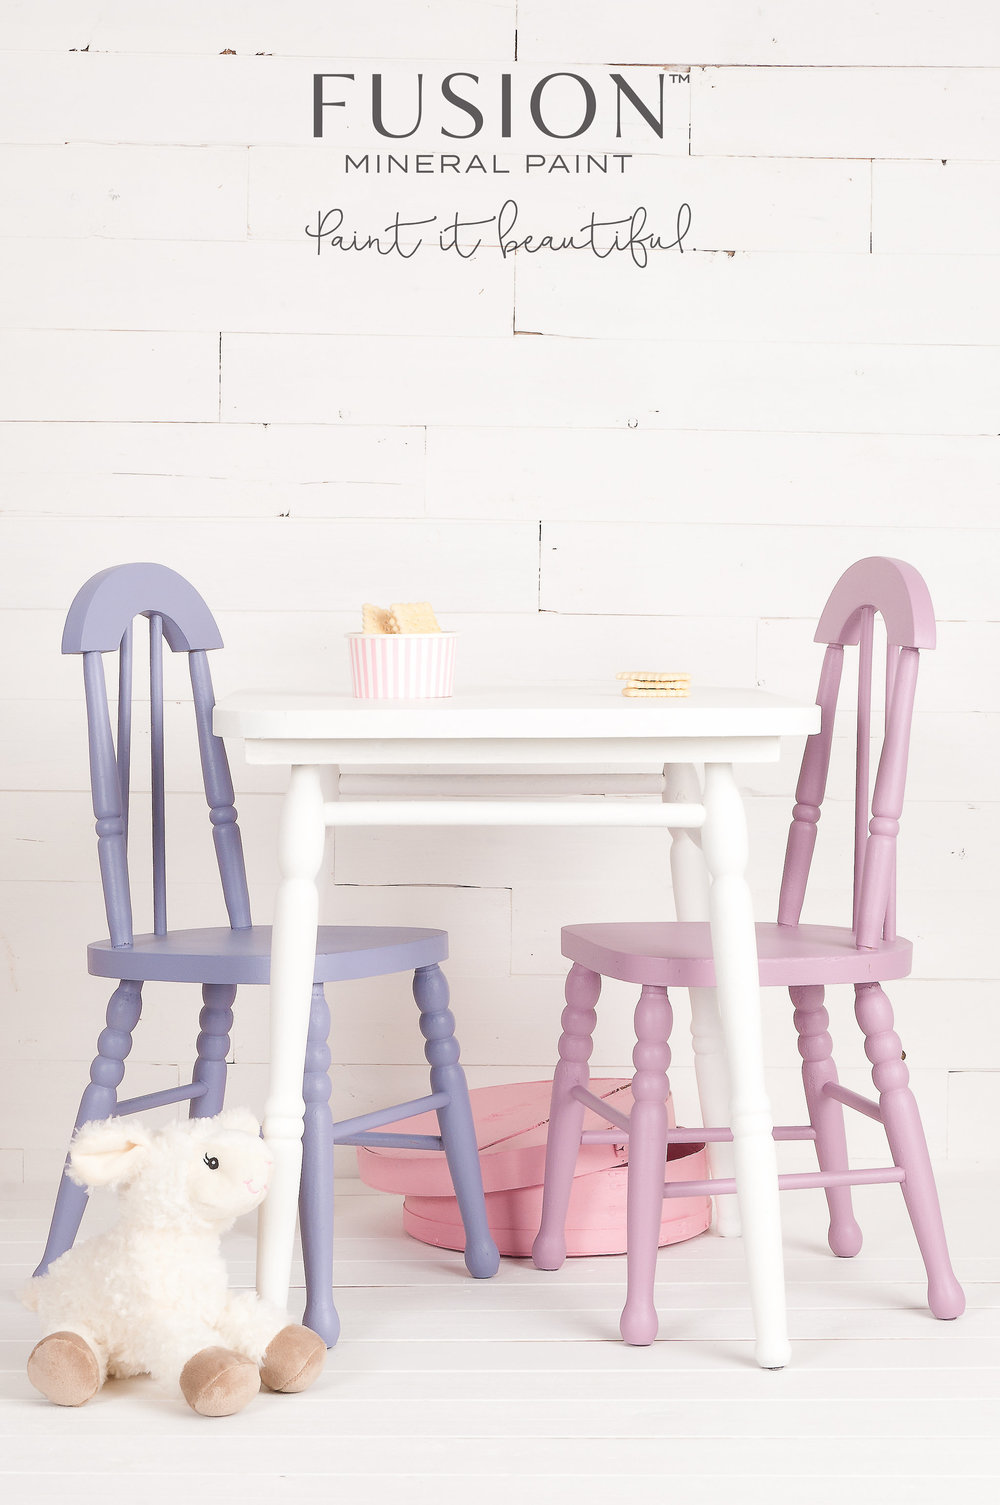 These little chairs and hat box were painted by mixing custom colours of Fusion Mineral Paint. Fusion offers 32 recipes that make mixing your own custom colours very simple.